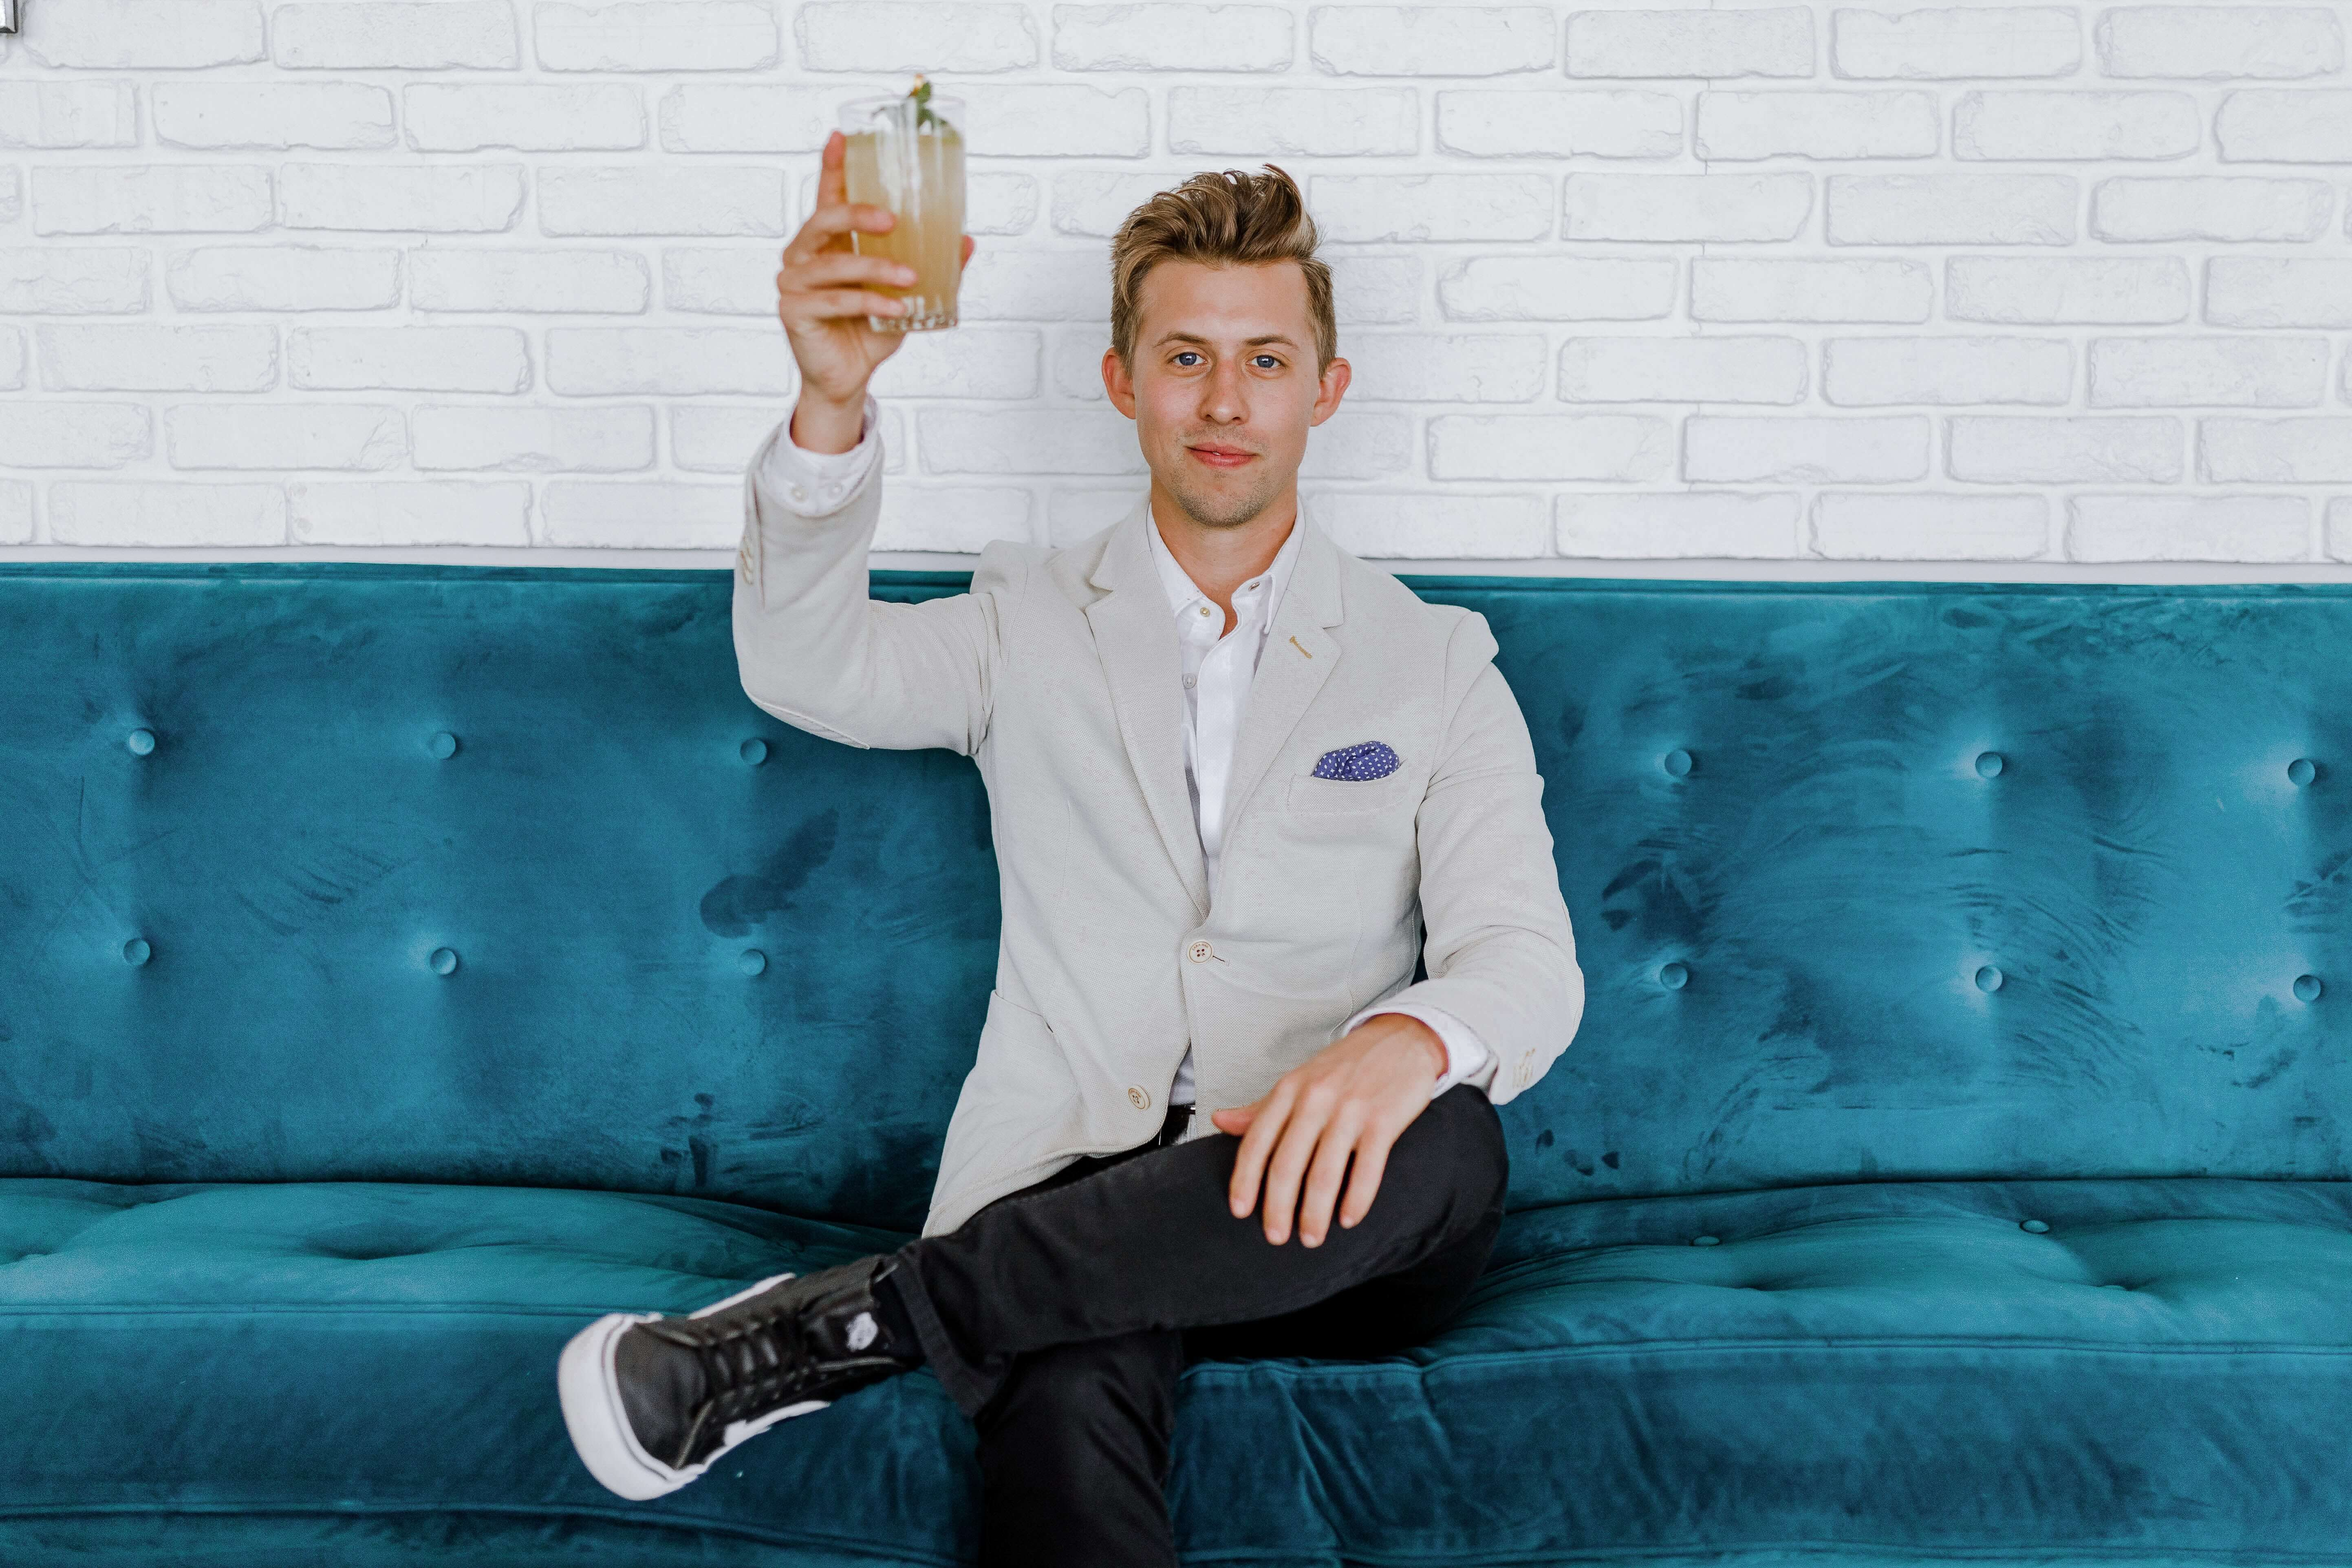 Man toasts to his new digital marketing agency